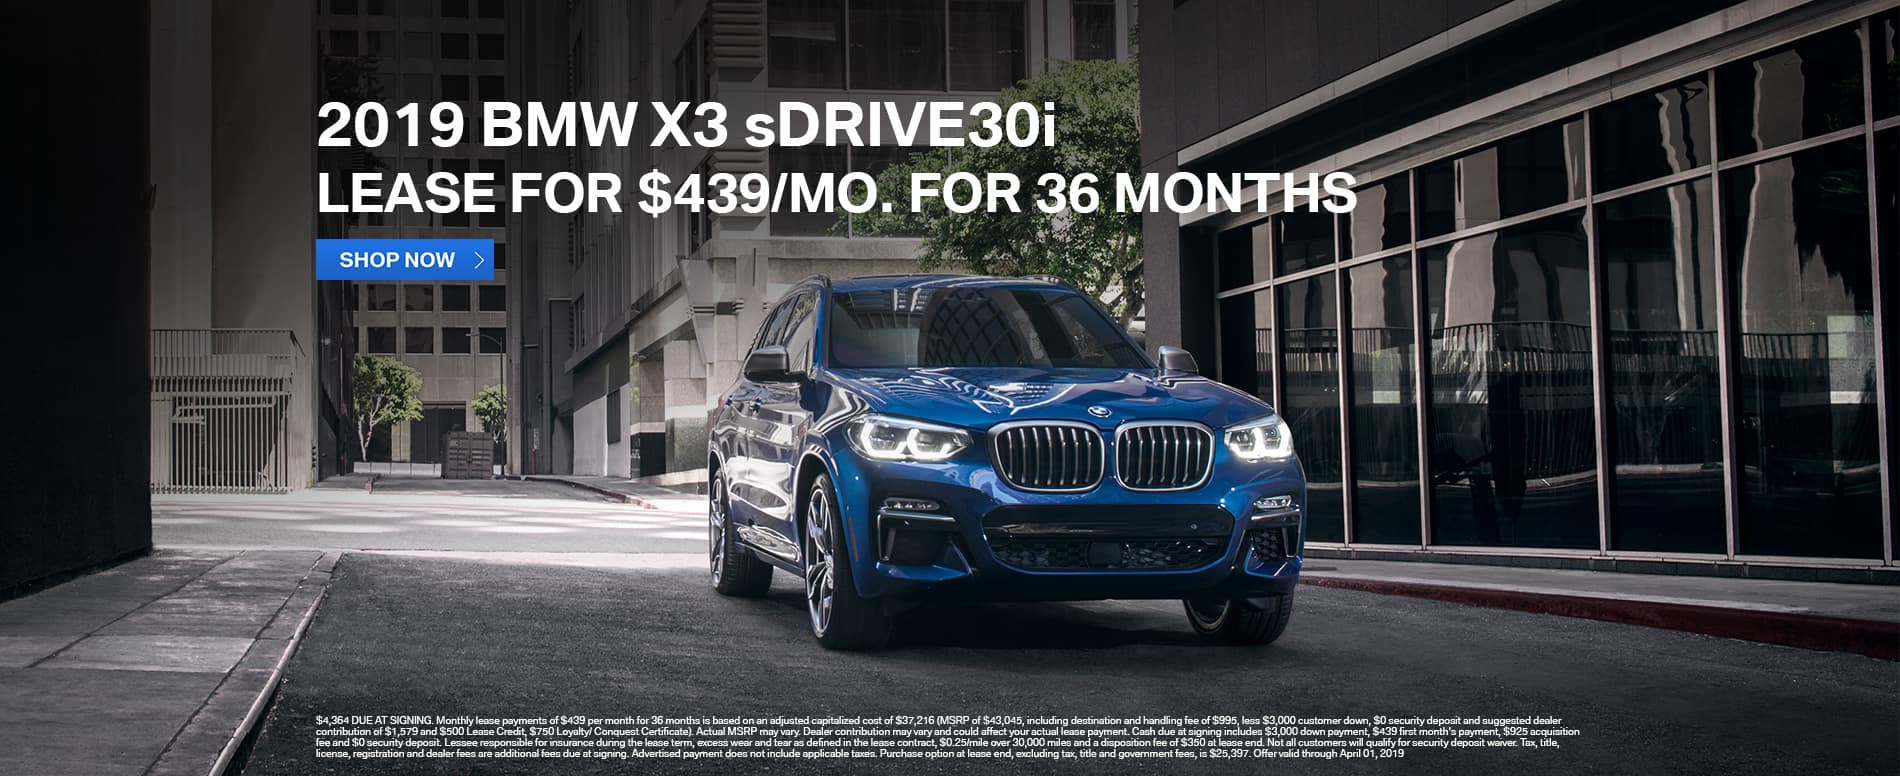 lease-2019-bmw-x3-sdrive30i-at-439-beaumont-tx